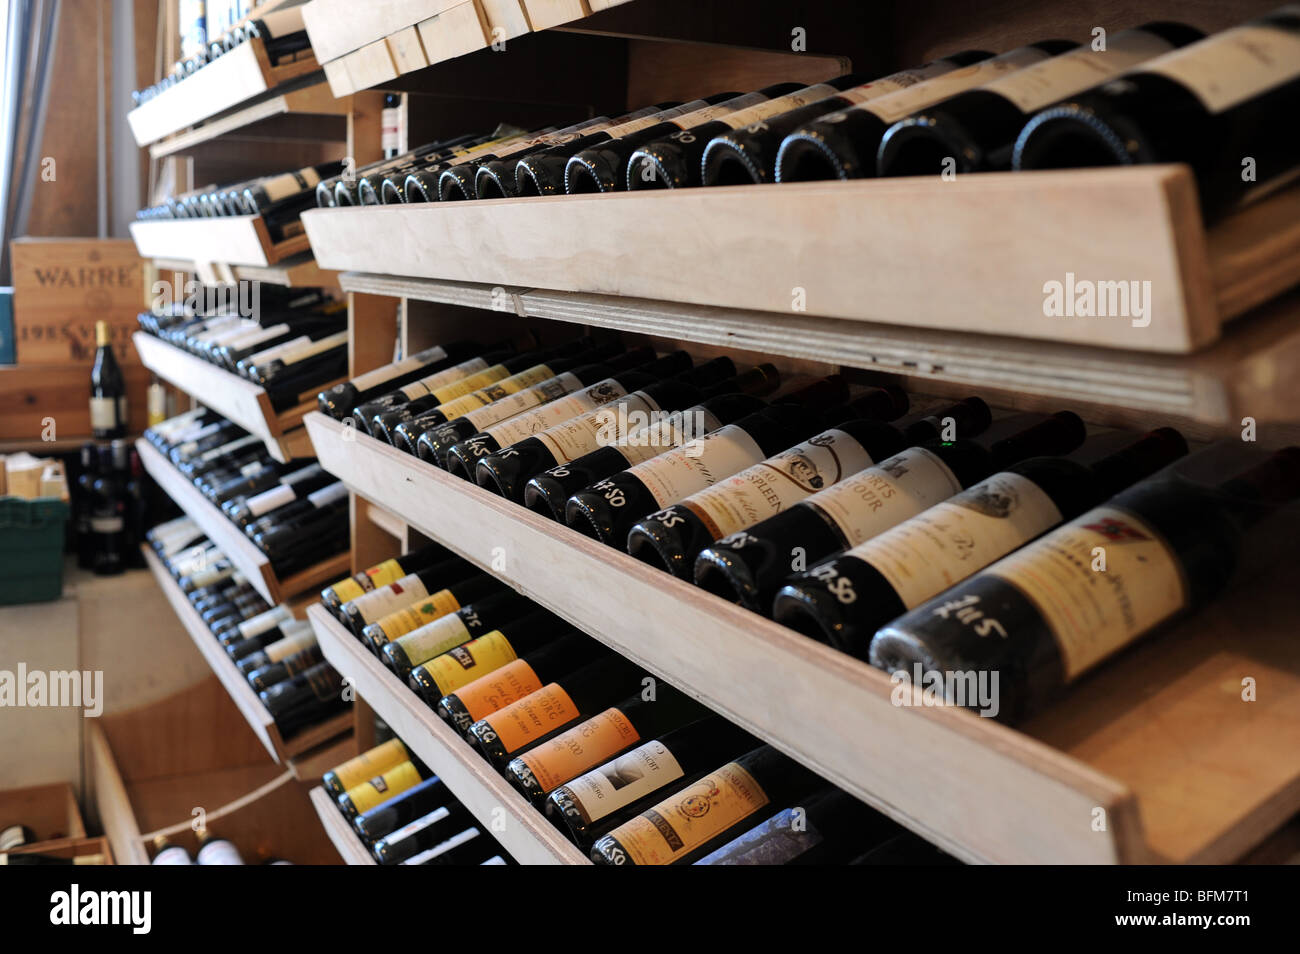 Expensive bottles of wine on sale at Butlers Wine Cellar in Brighton UK - Stock Image & Expensive French Wine Bottles In Stock Photos u0026 Expensive French ...